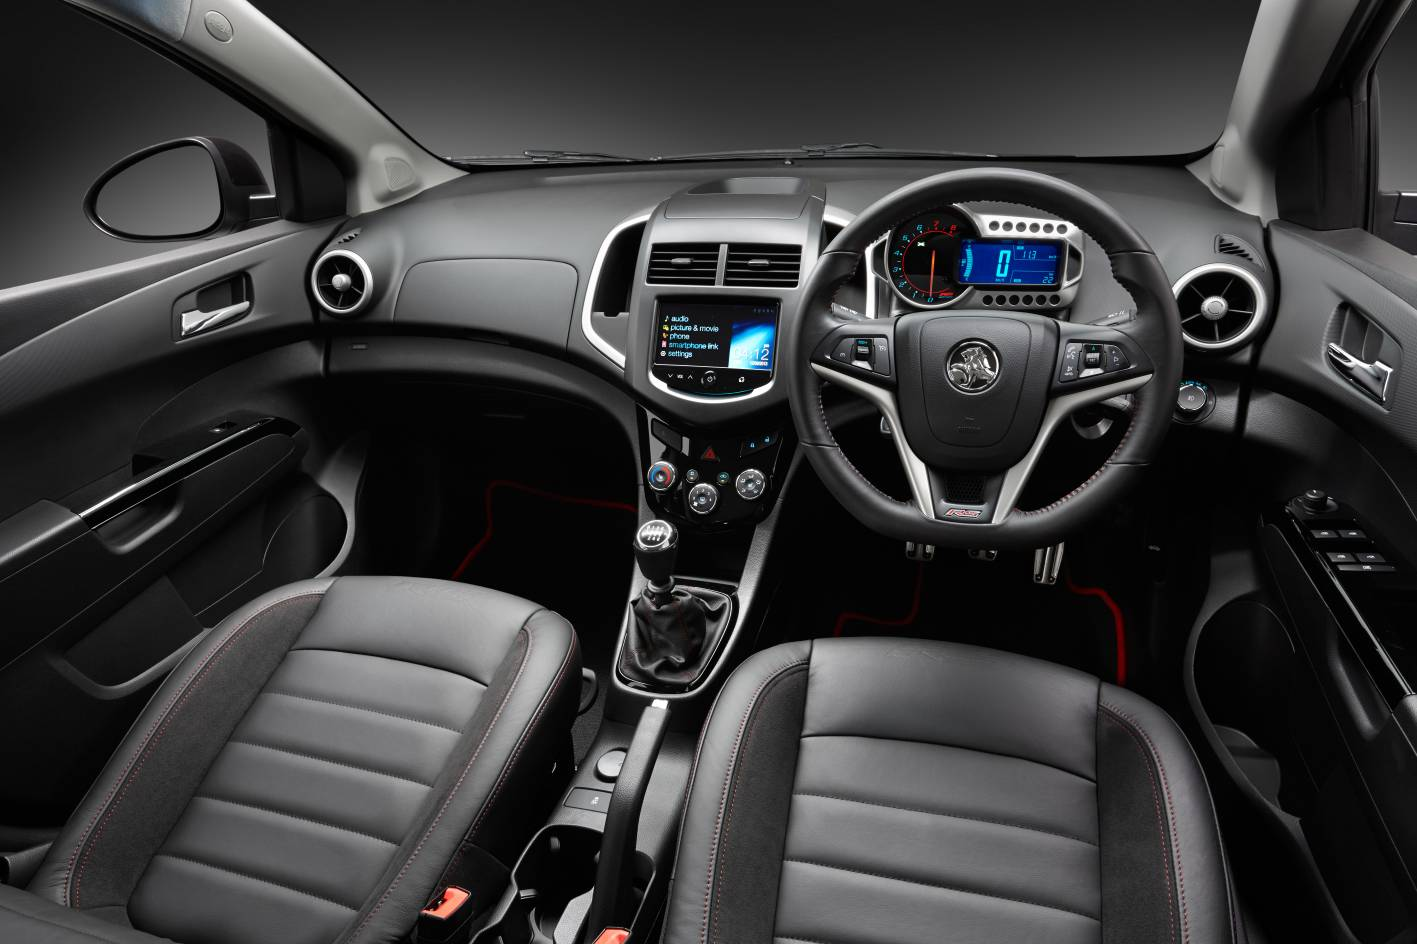 Holden Barina RS on sale from $20,990 | PerformanceDrive